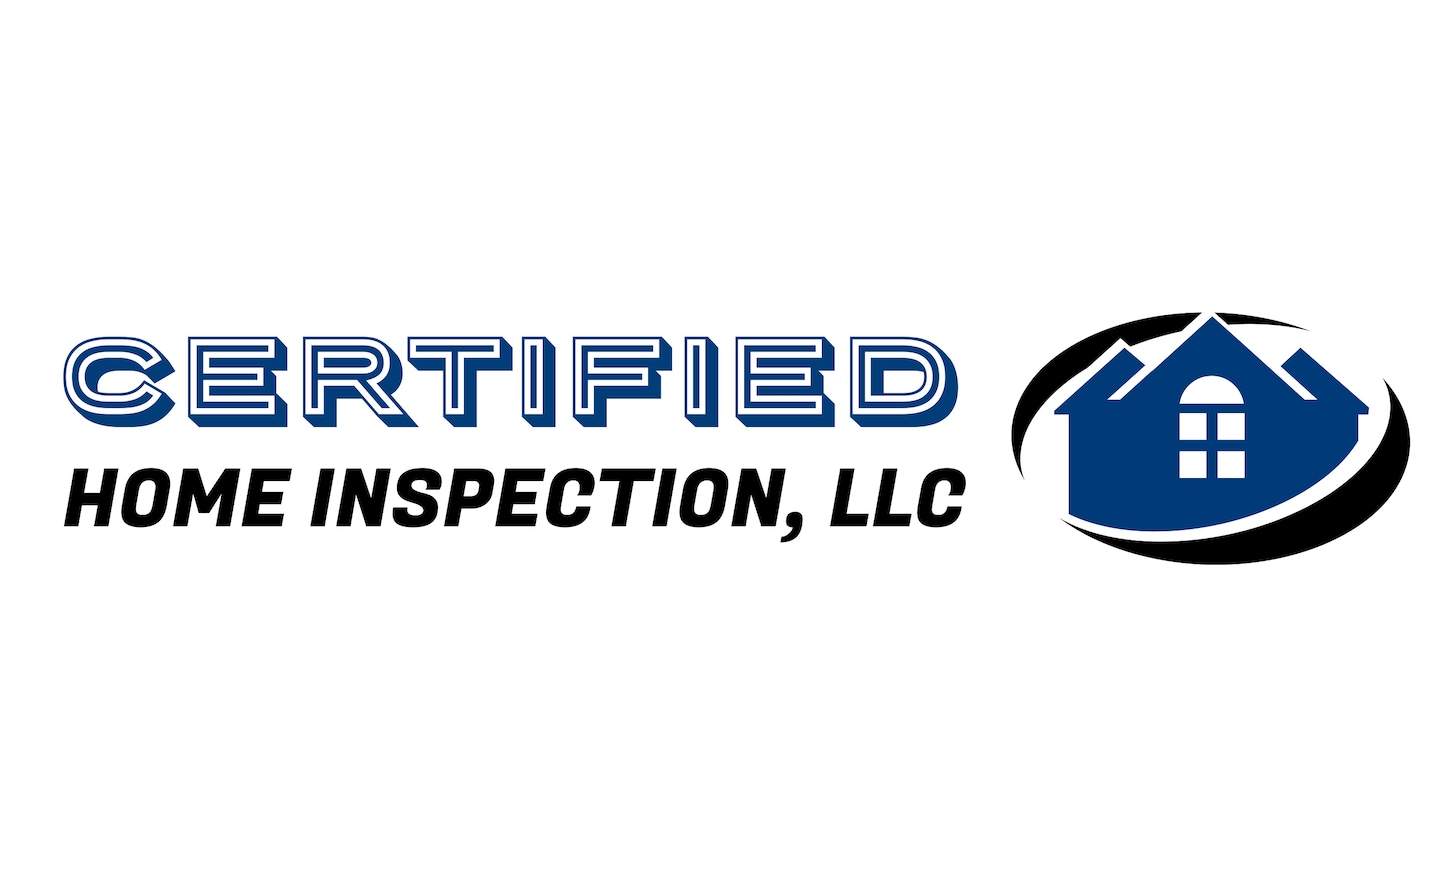 Certified Home Inspection, LLC